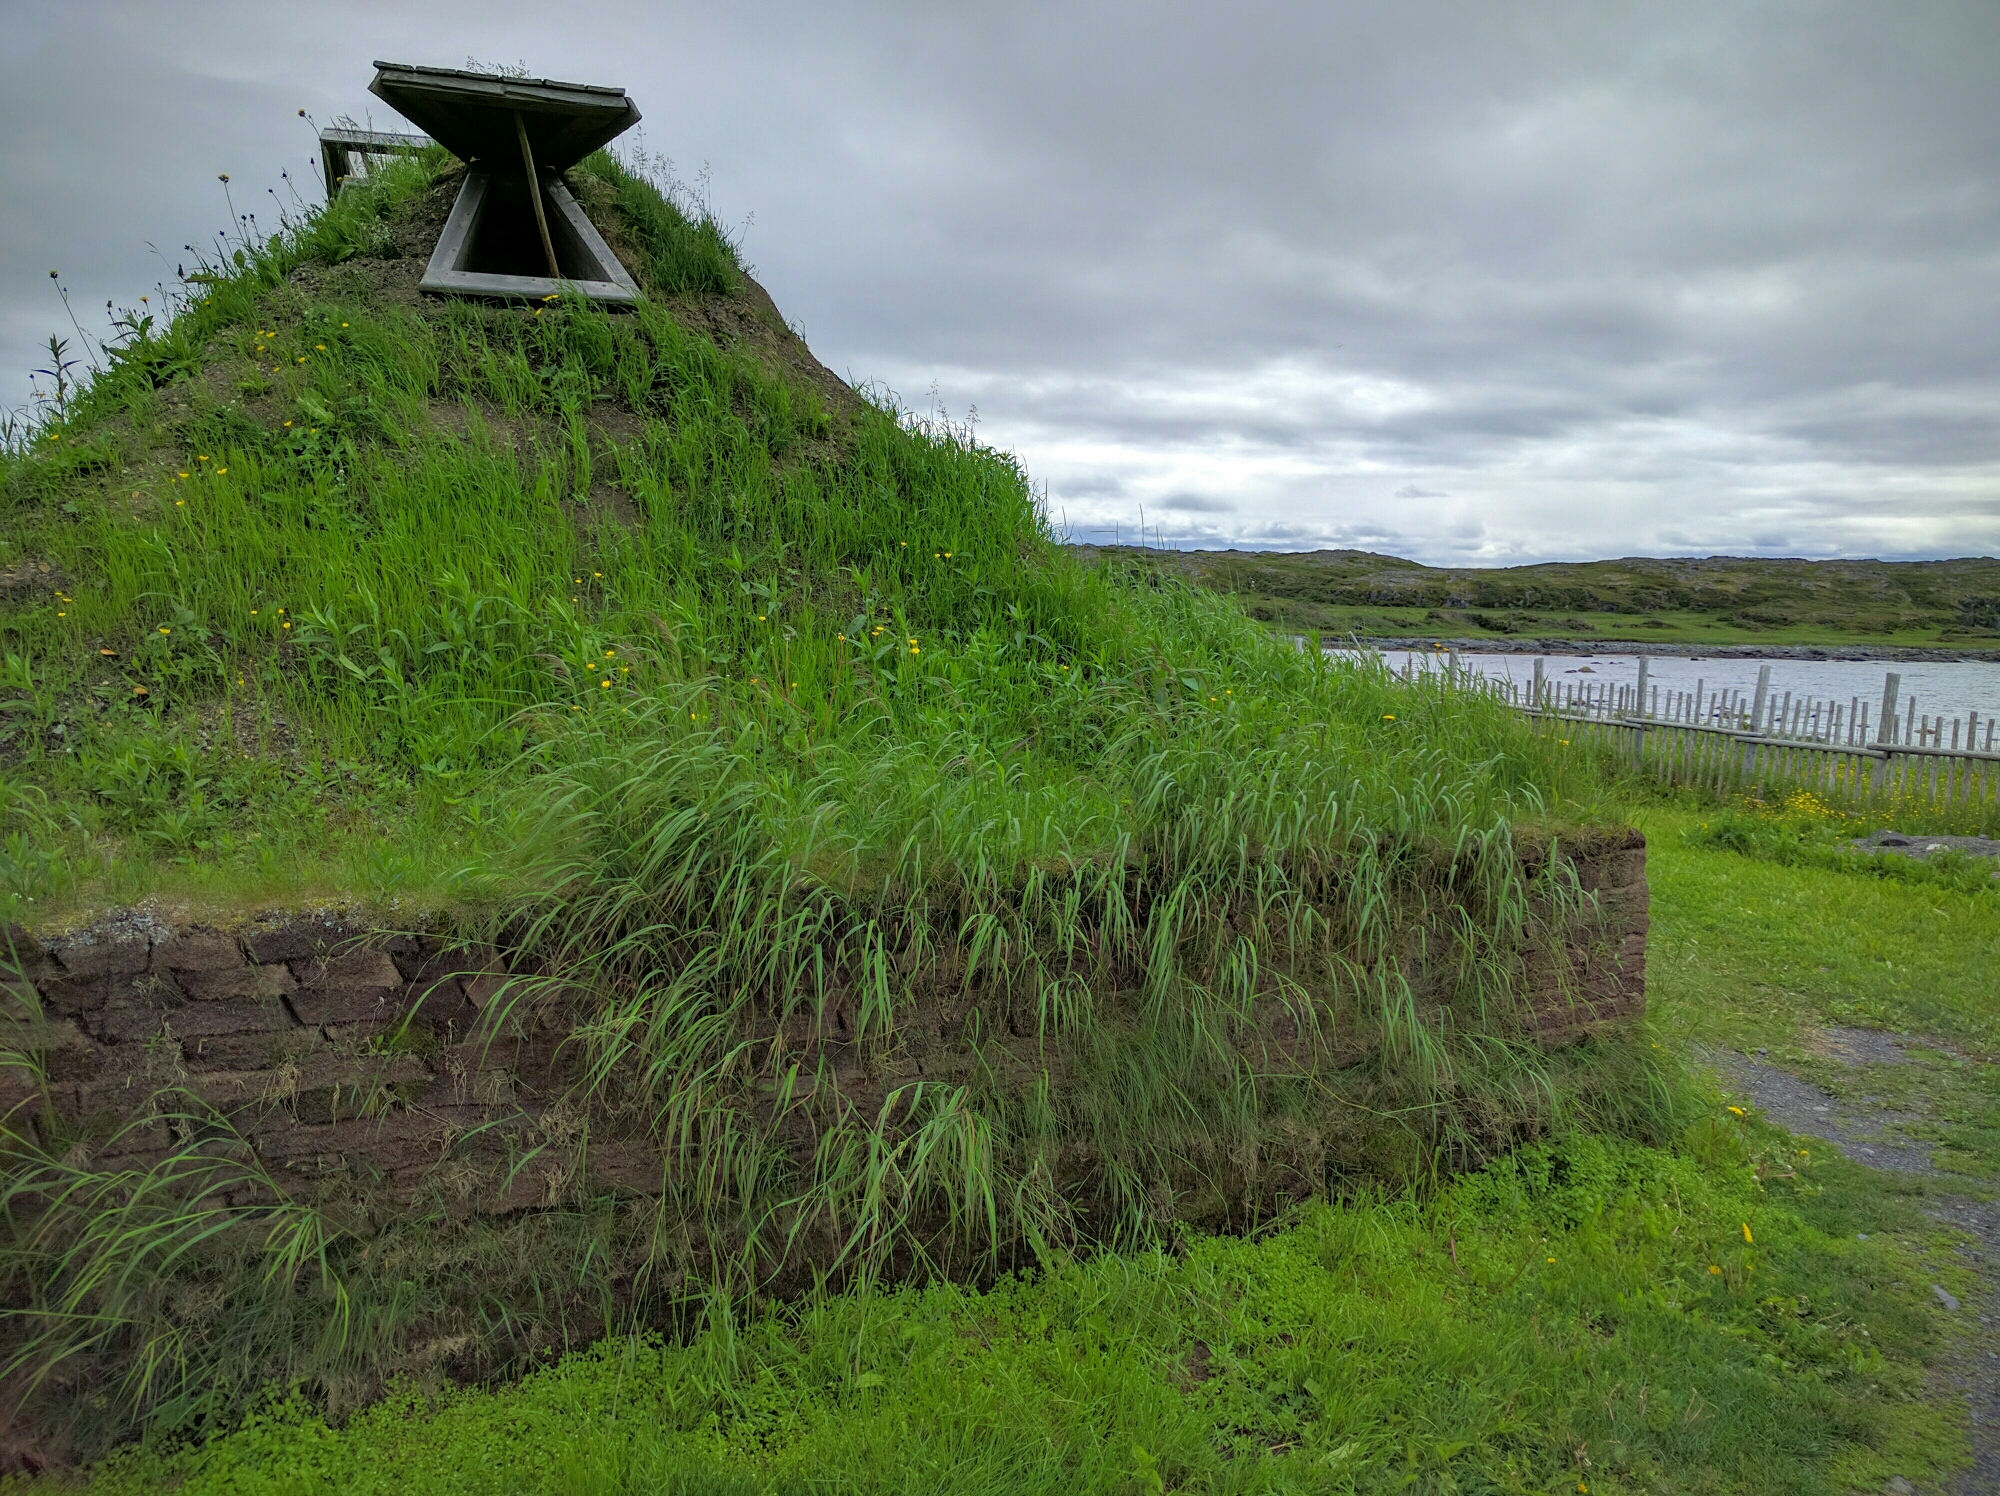 Viking structure replicas at L'Anse aux Meadows